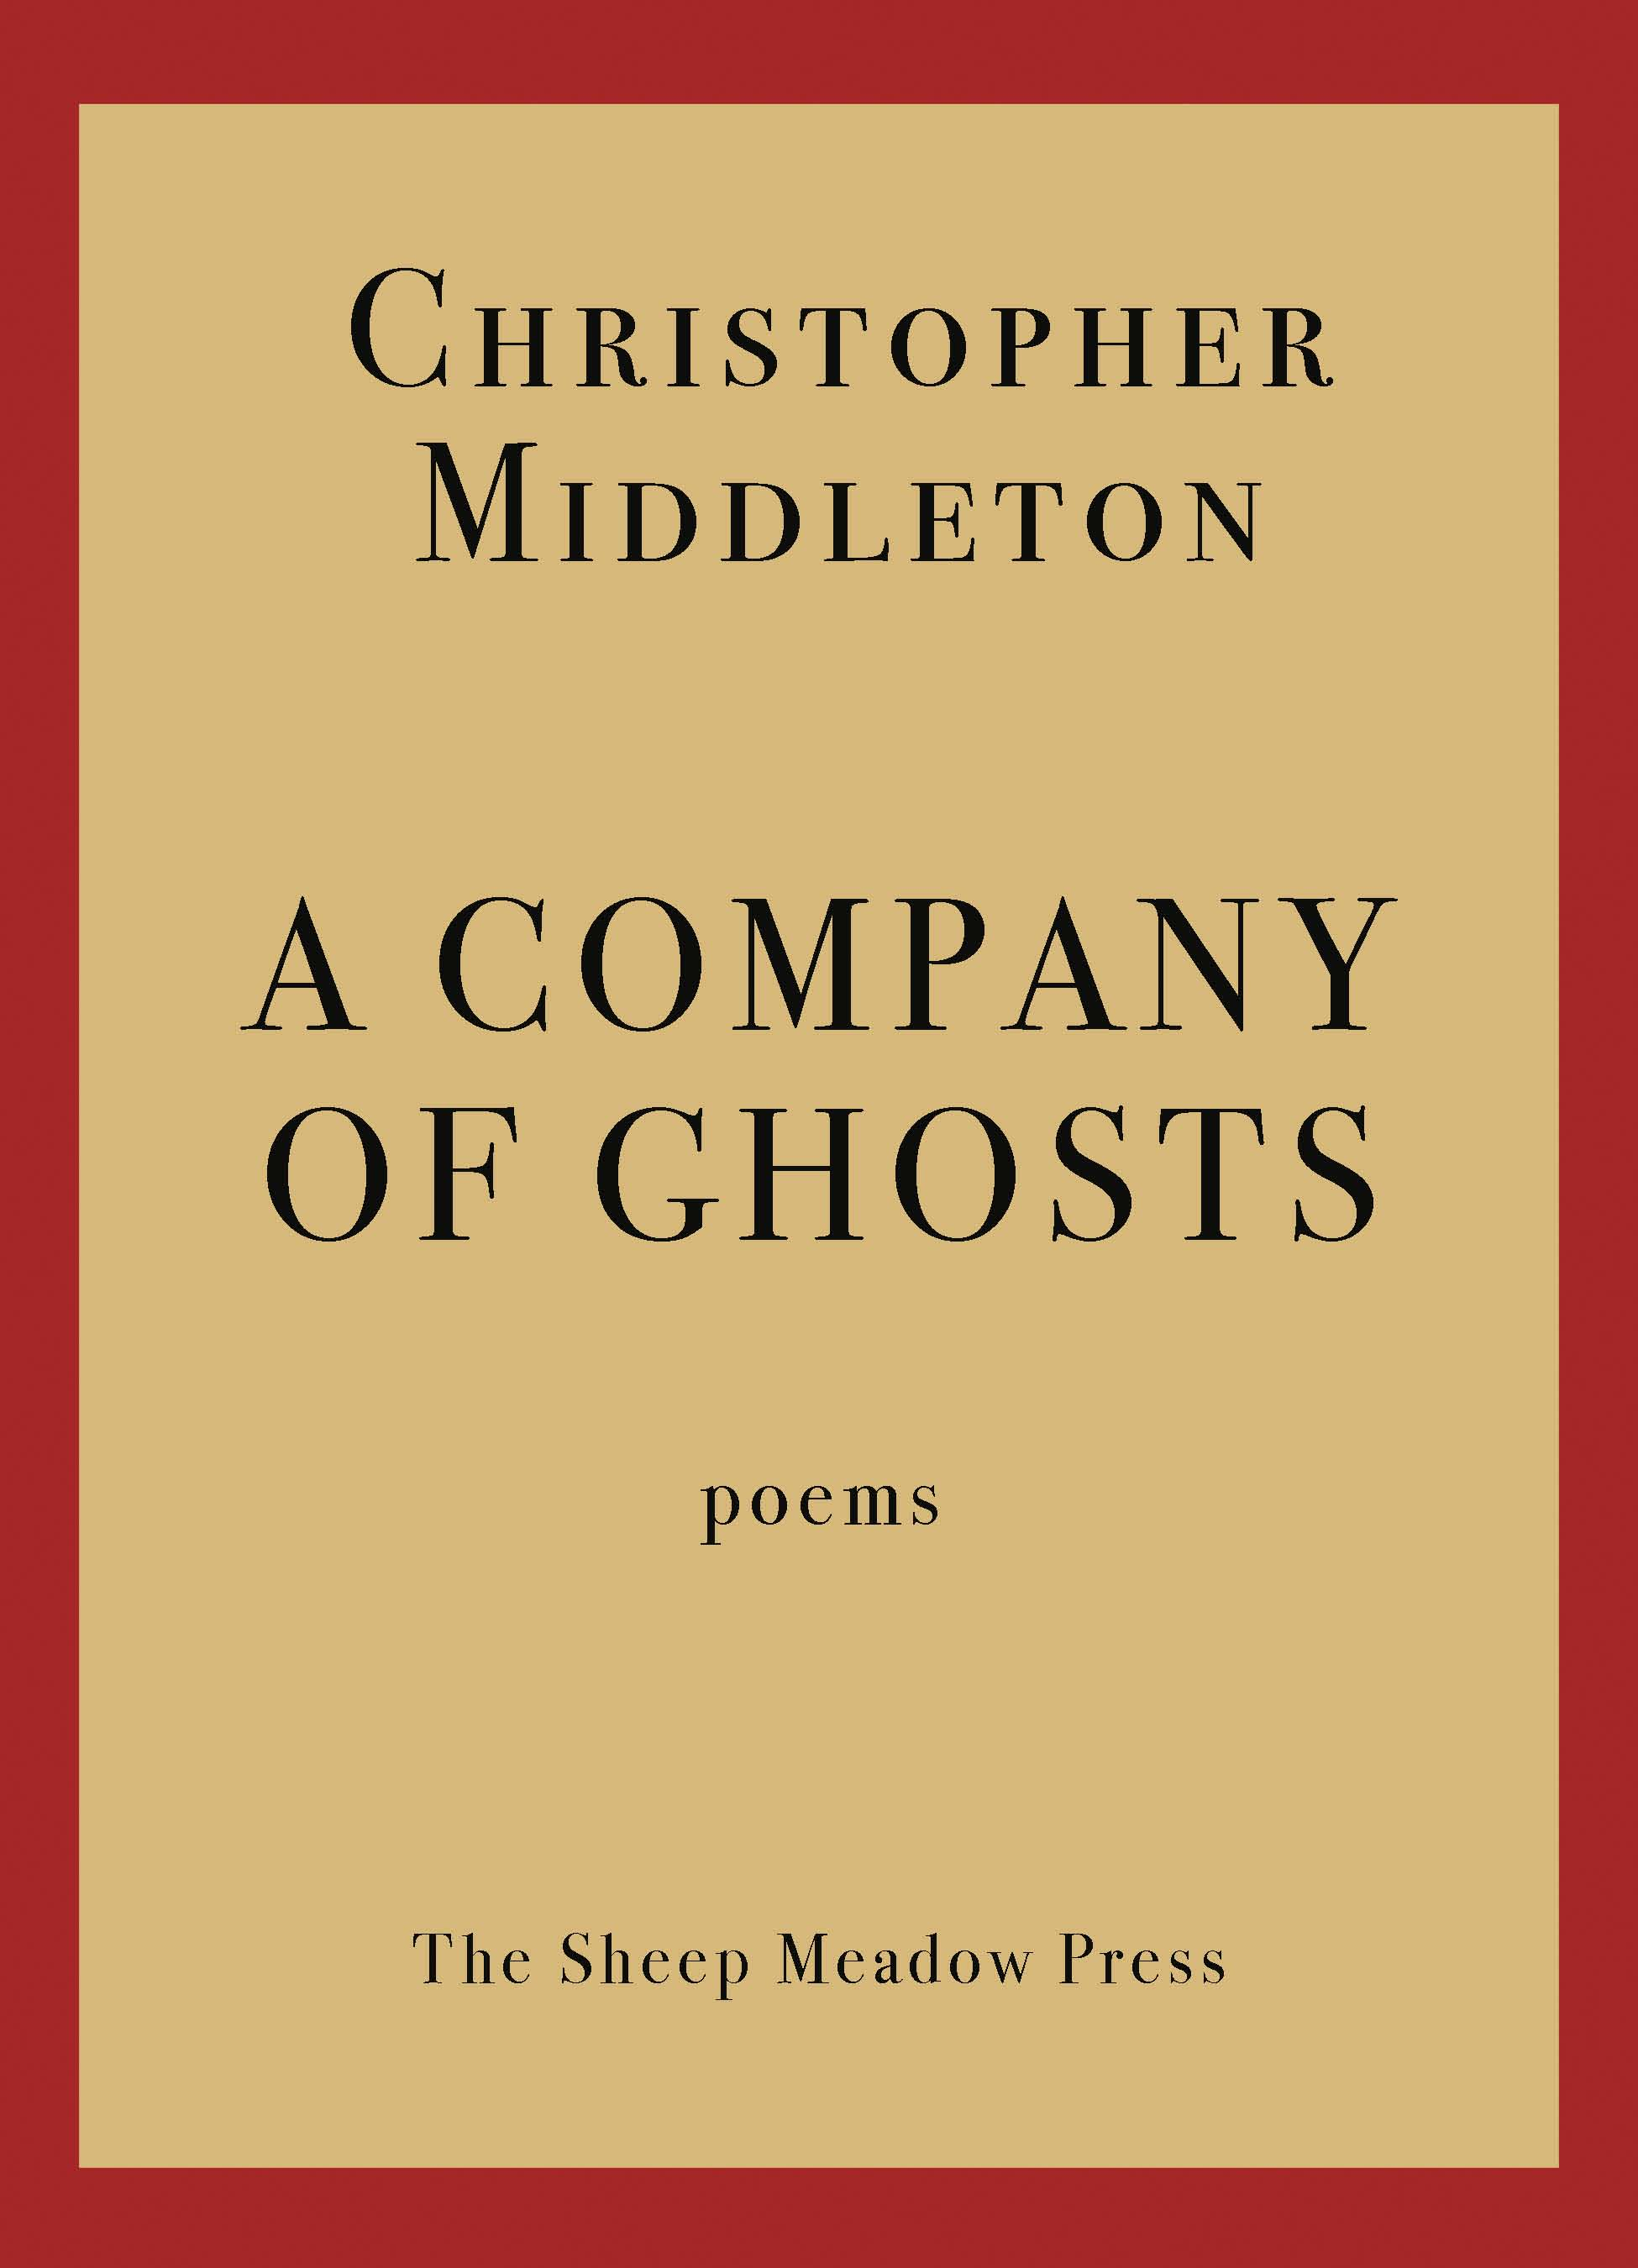 Christopher Middleton front cover copy.jpg